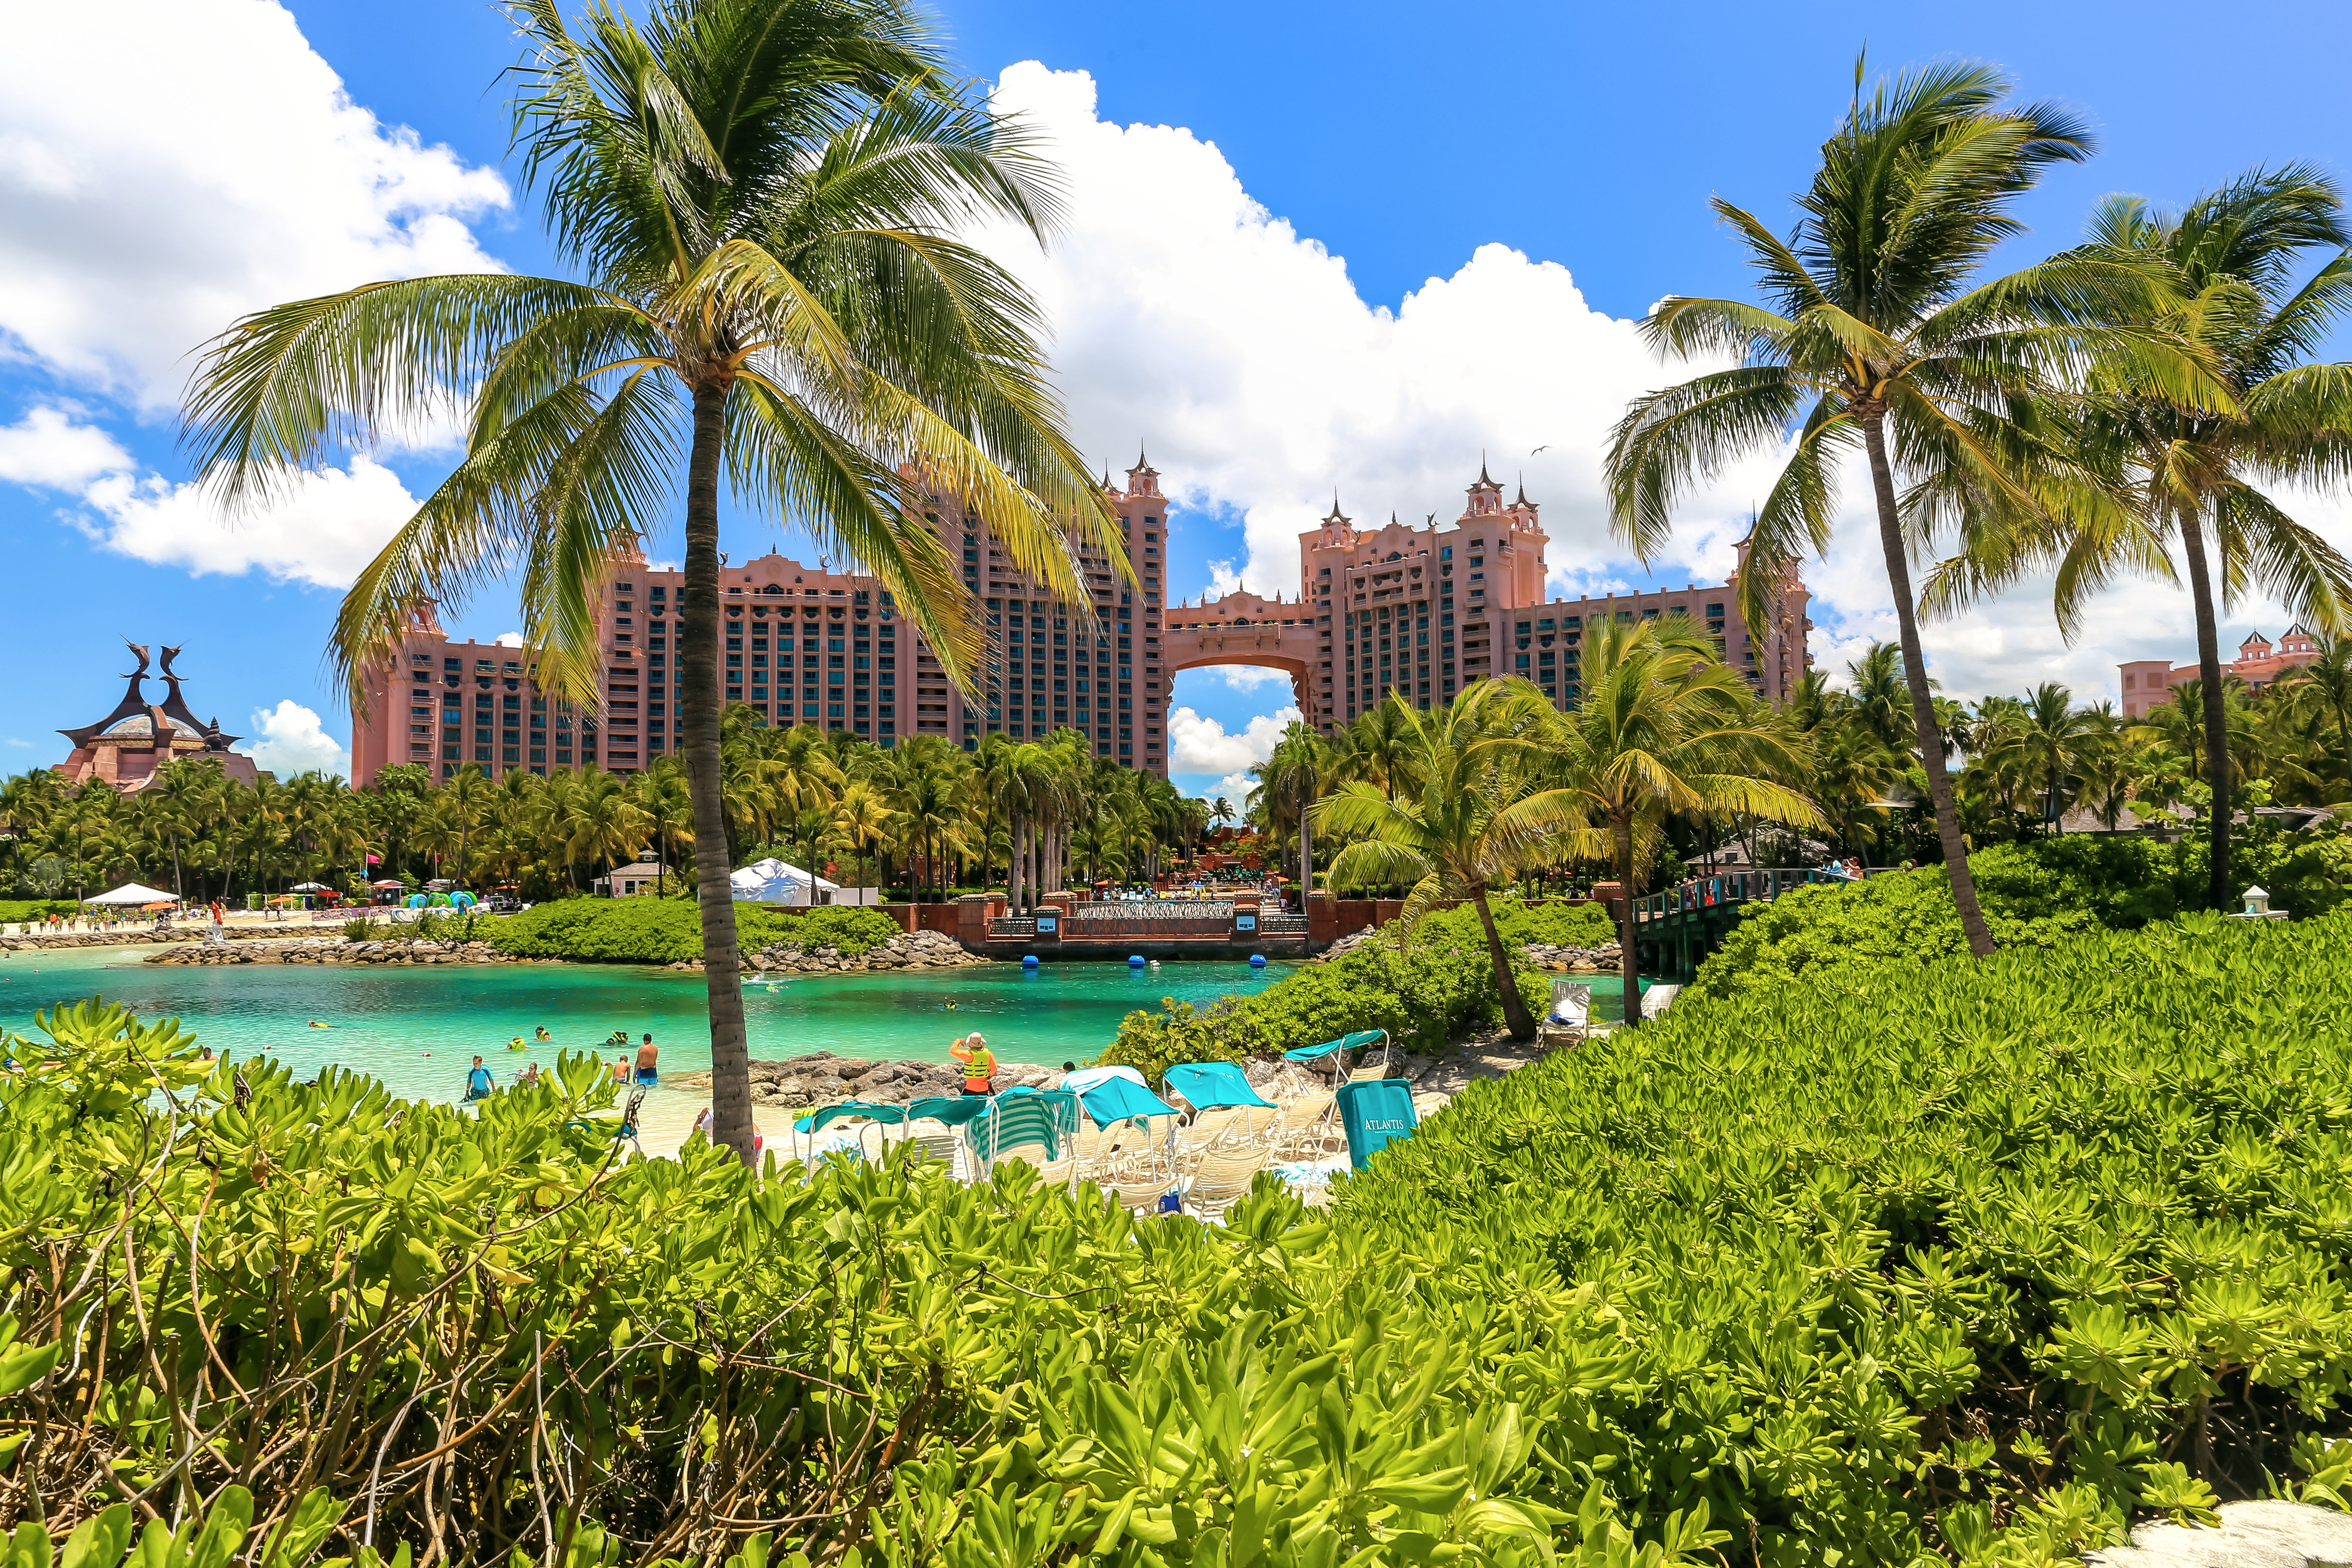 4 Reasons To Fall In Love With This Classic Bahamas Resort All Over Again